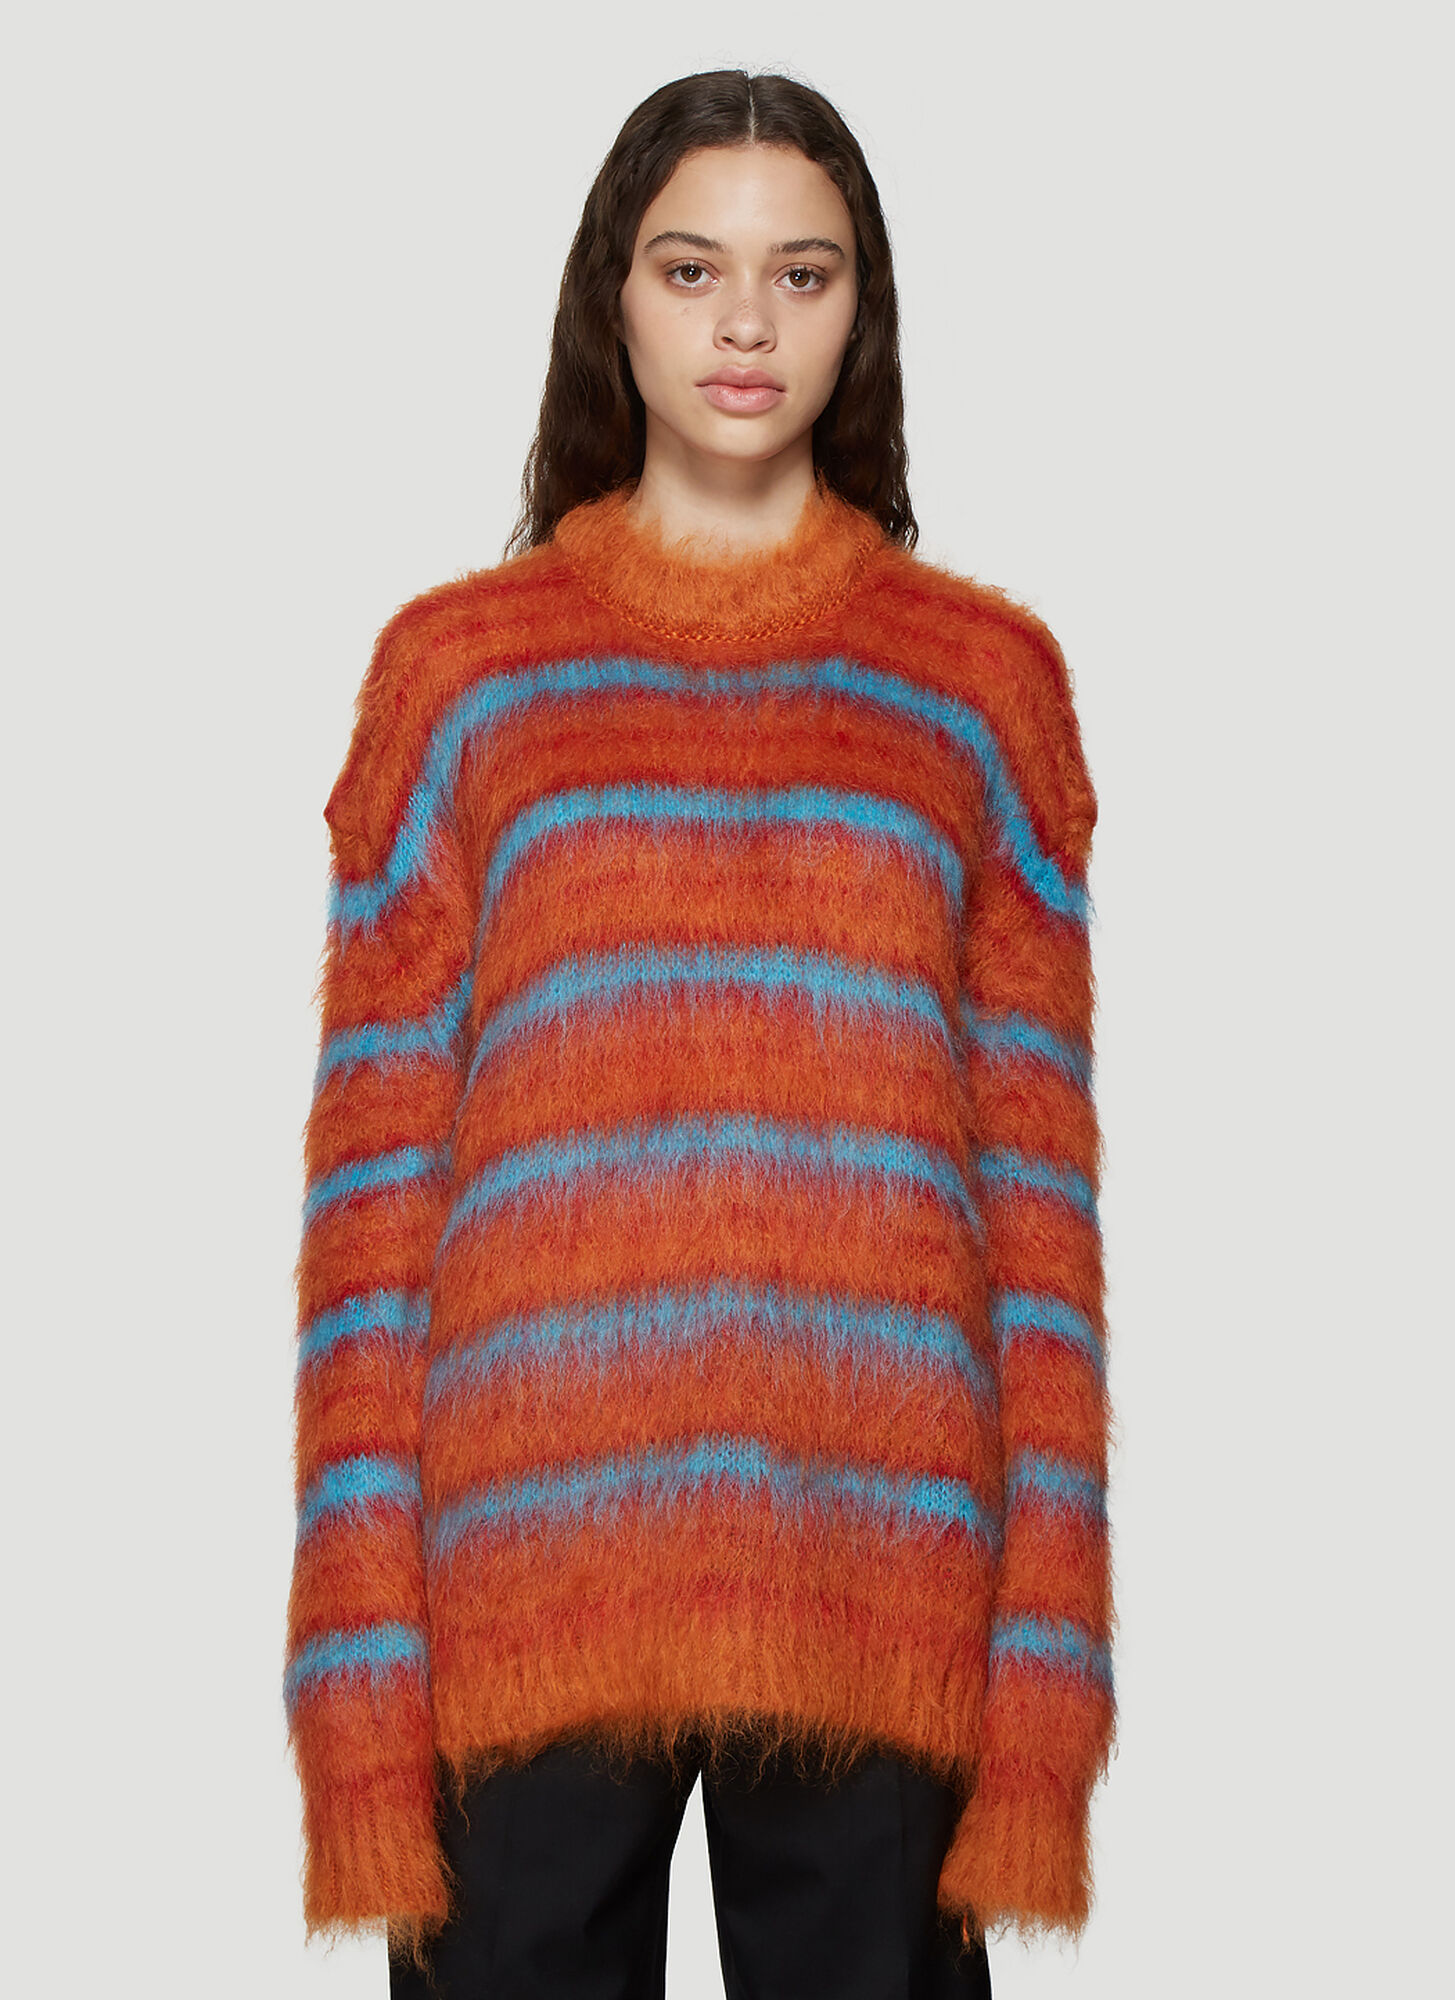 Marni Brushed Knit Striped Sweater in Orange